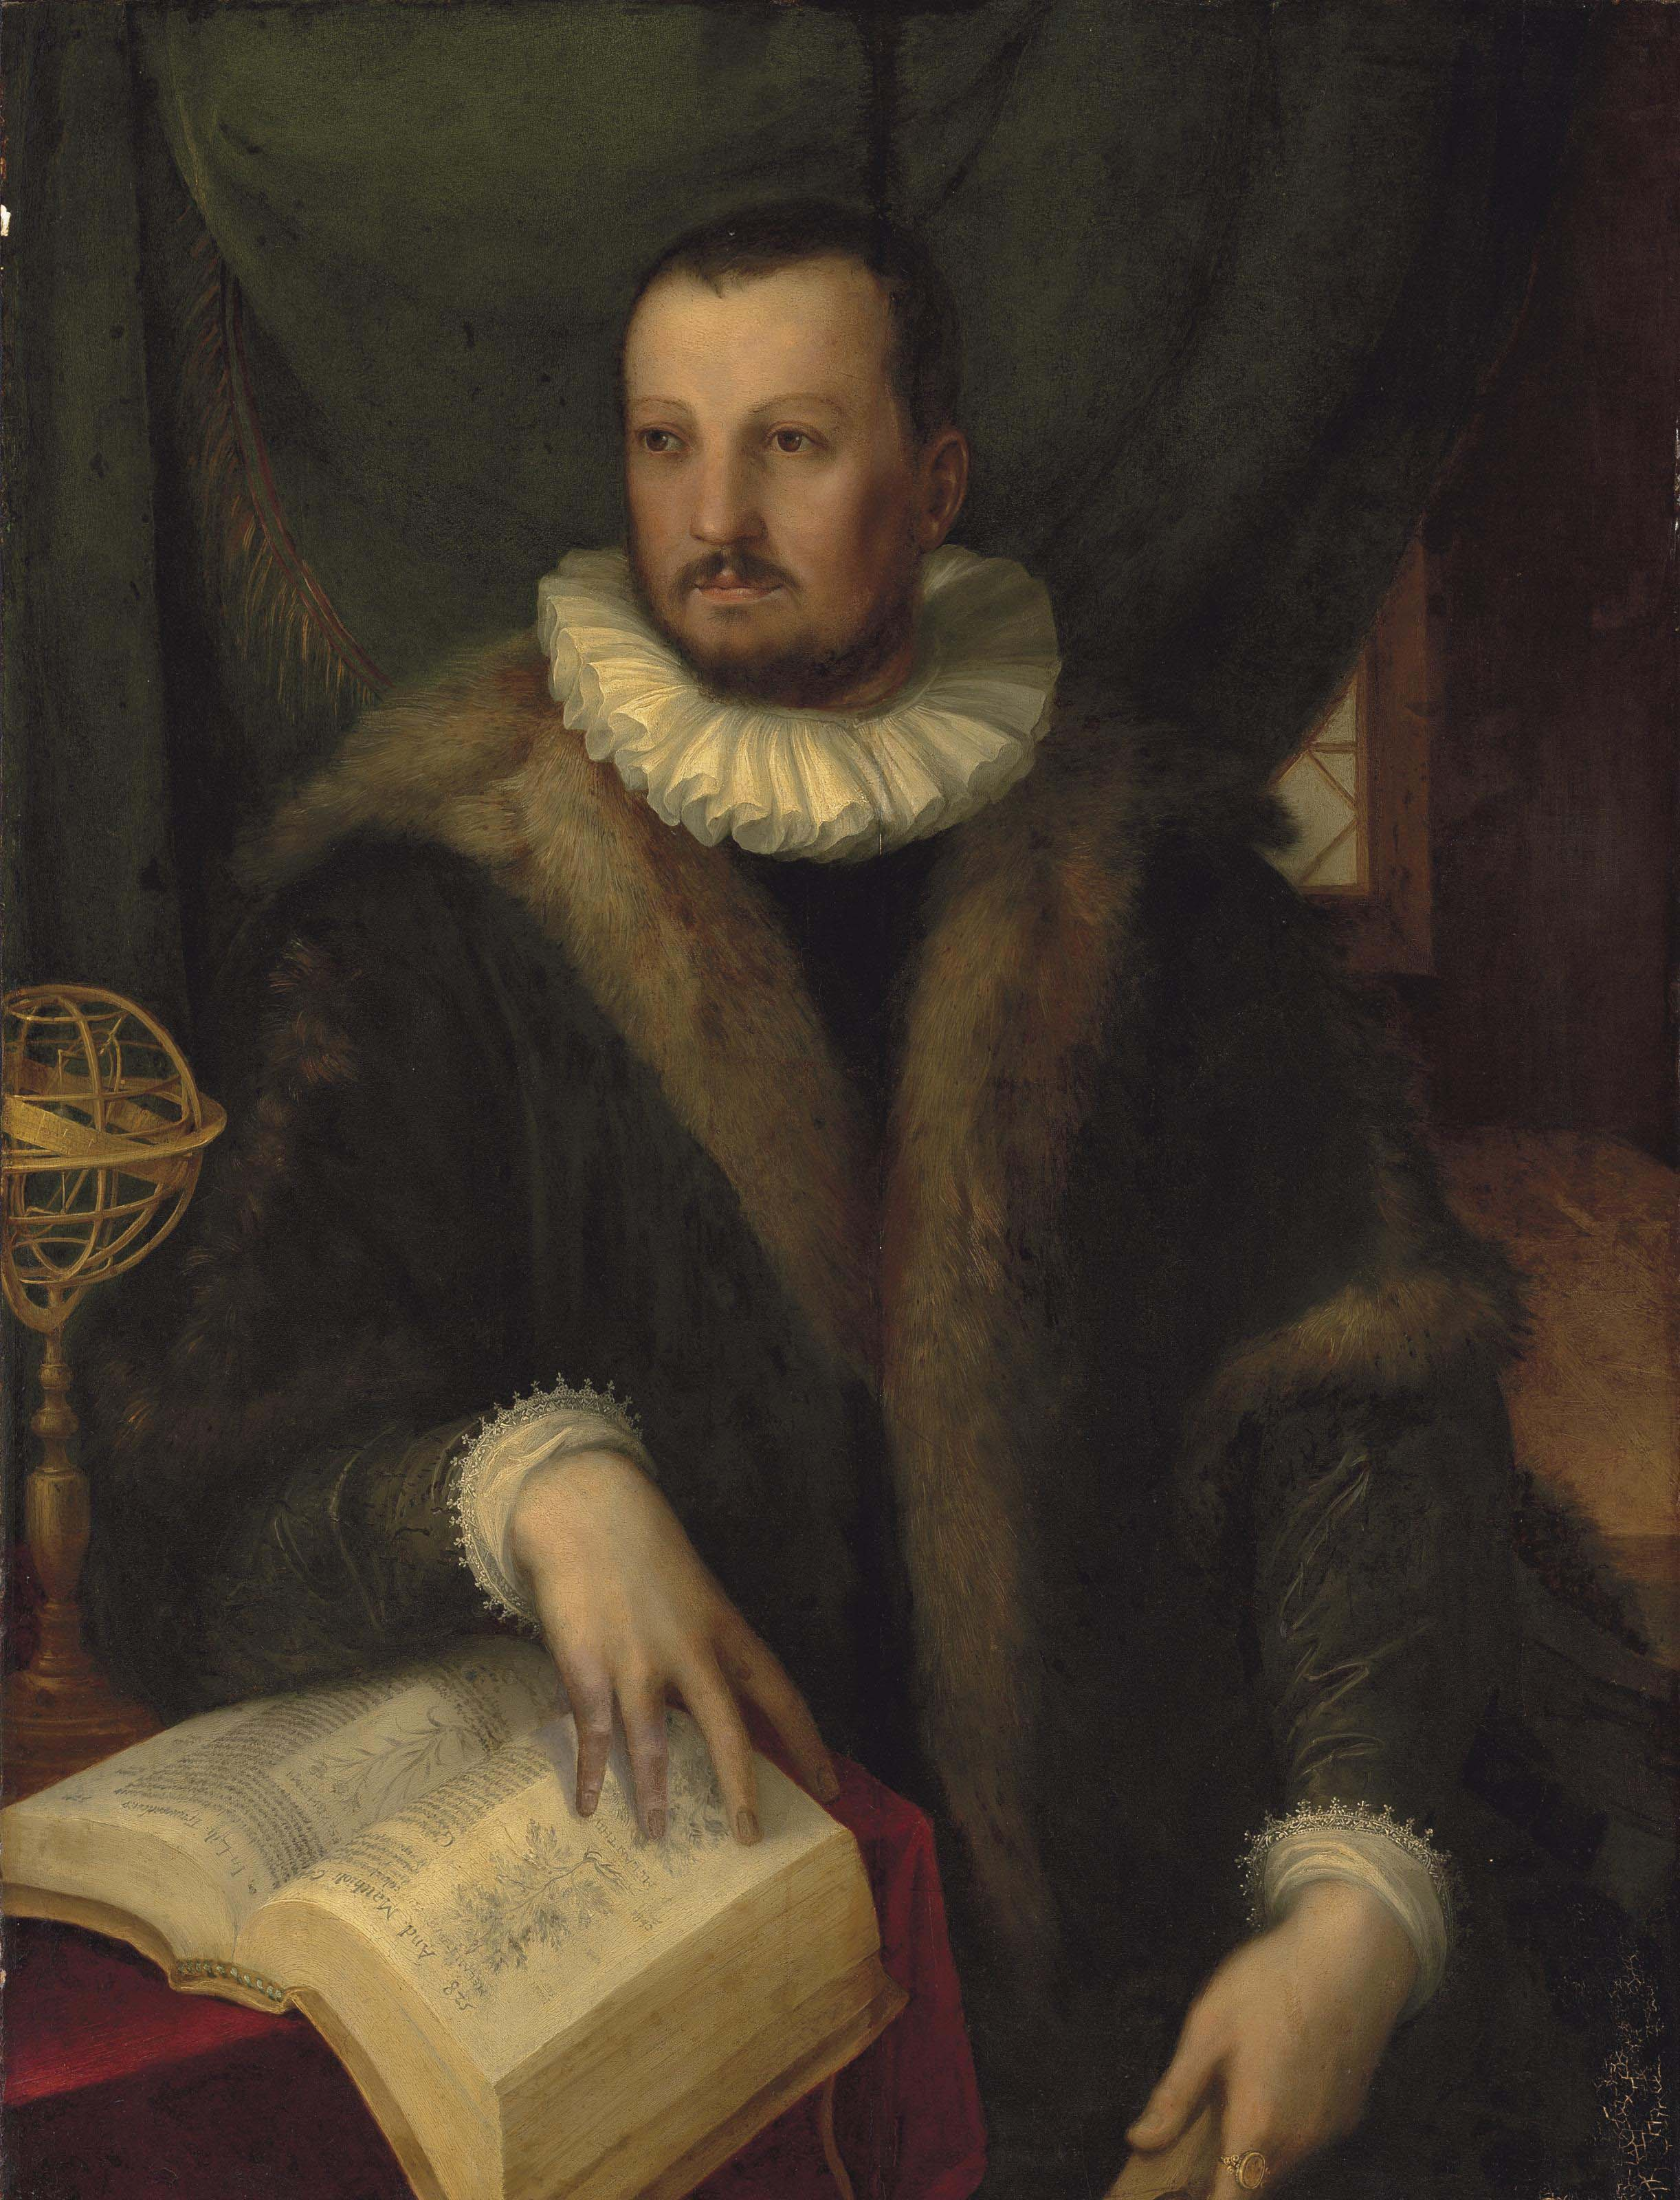 Portrait of Francesco I de' Medici (1541-1587), Grand Duke of Tuscany, three-quarter-length, in a fur-trimmed coat and a white ruff, his hand resting on the pages of Mattioli's 'Commentarii in sex Libros Pedacii Dioscoridis', on a draped table with an armillary sphere, before a curtain